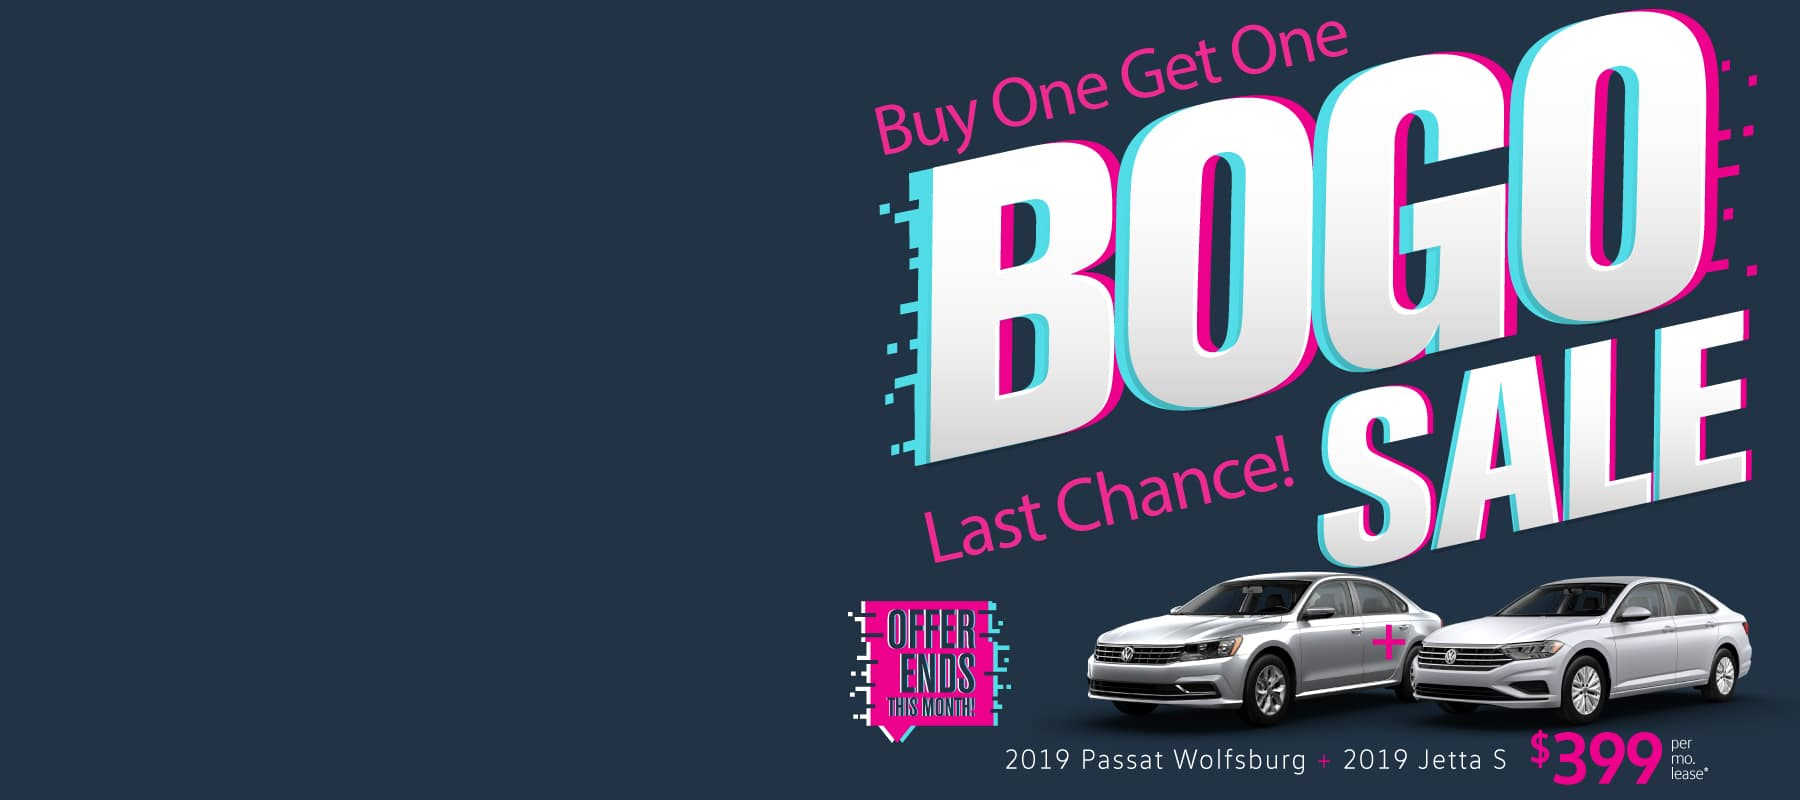 Don't miss our Buy One Get One sale at Volkswagen SouthTowne!